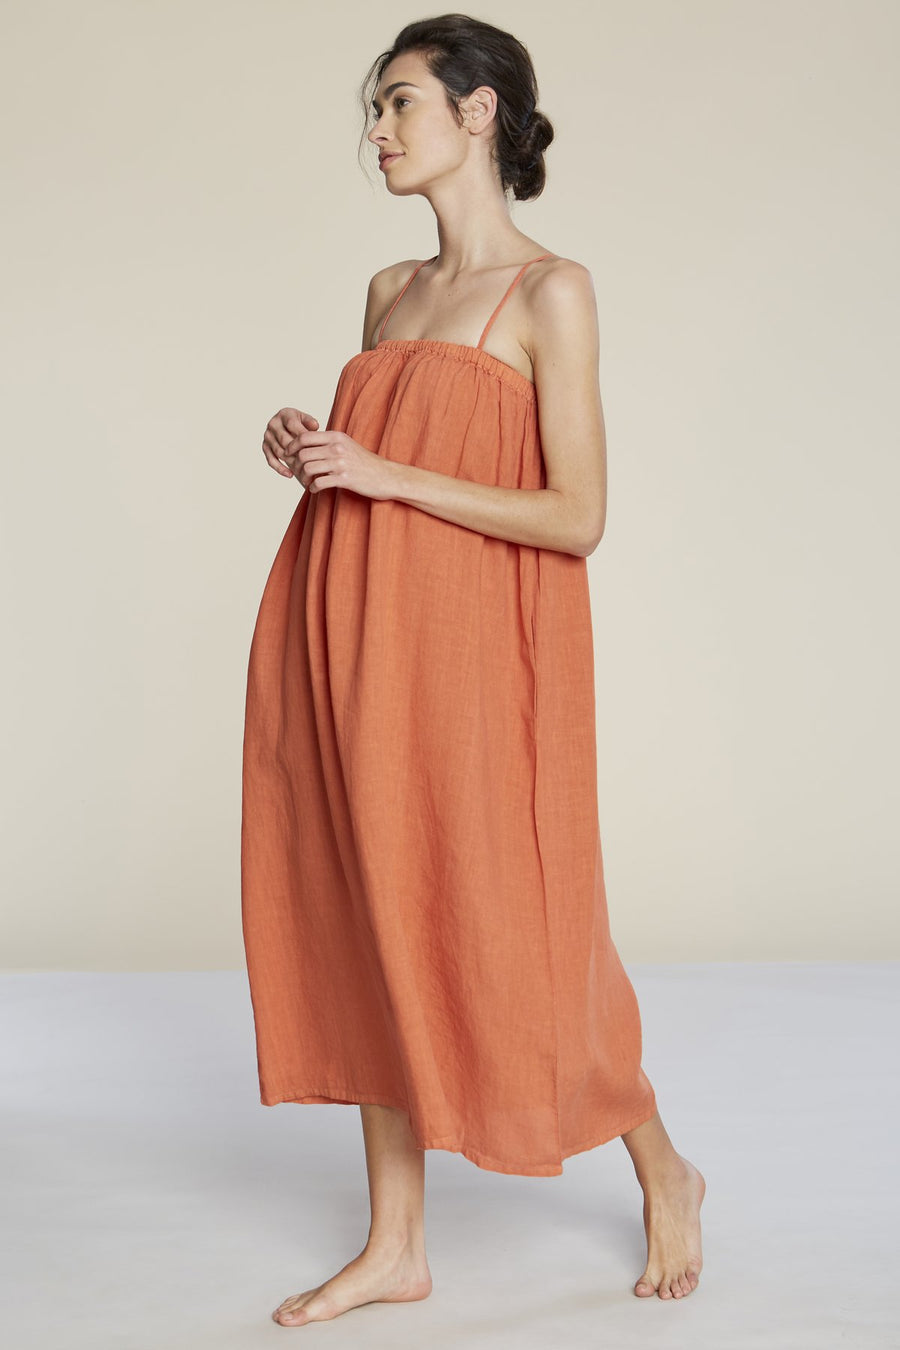 Filosofia Leah Linen Maxi Dress in Koi